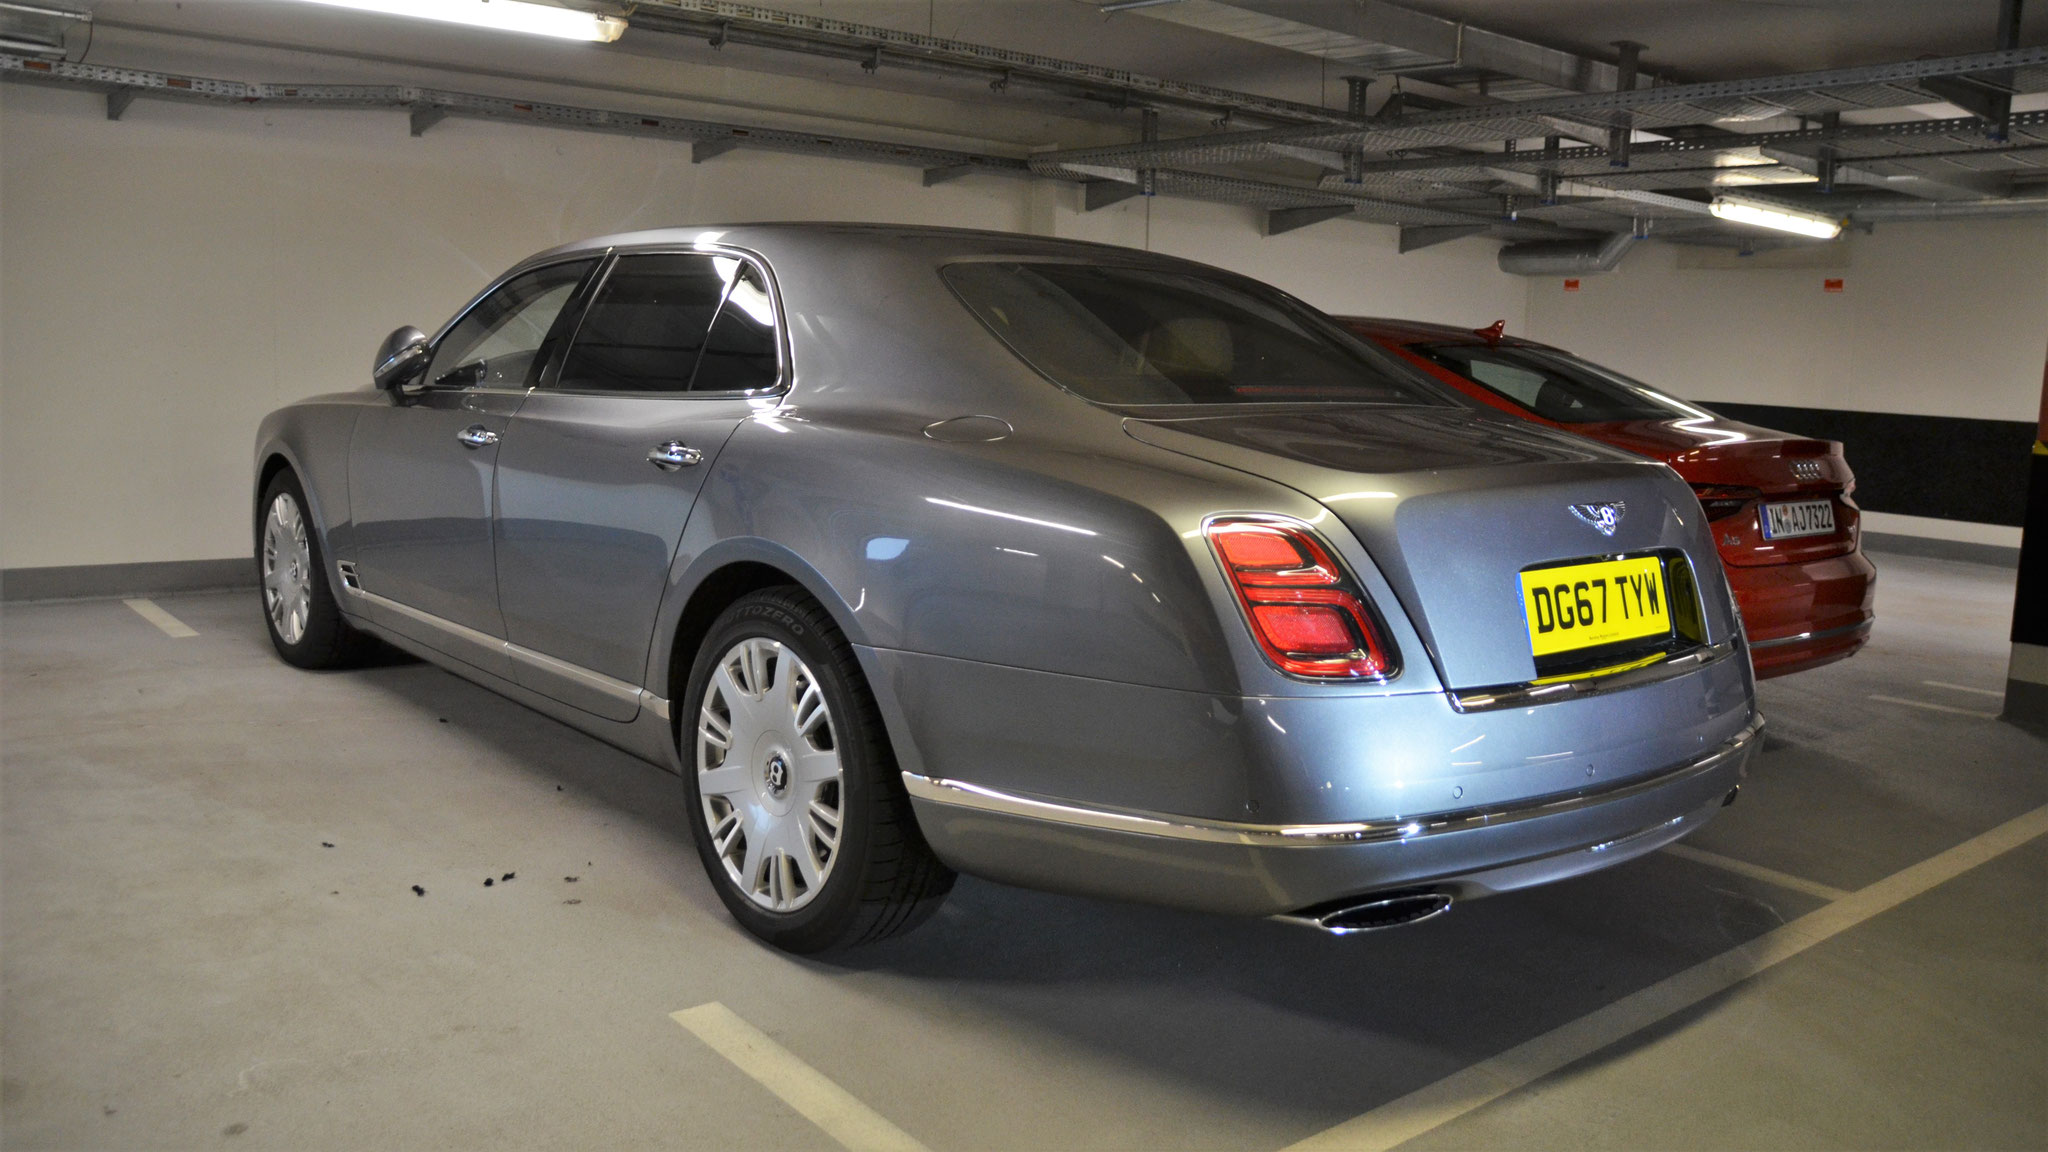 Bentley Mulsanne - DG67-TYW (GB)